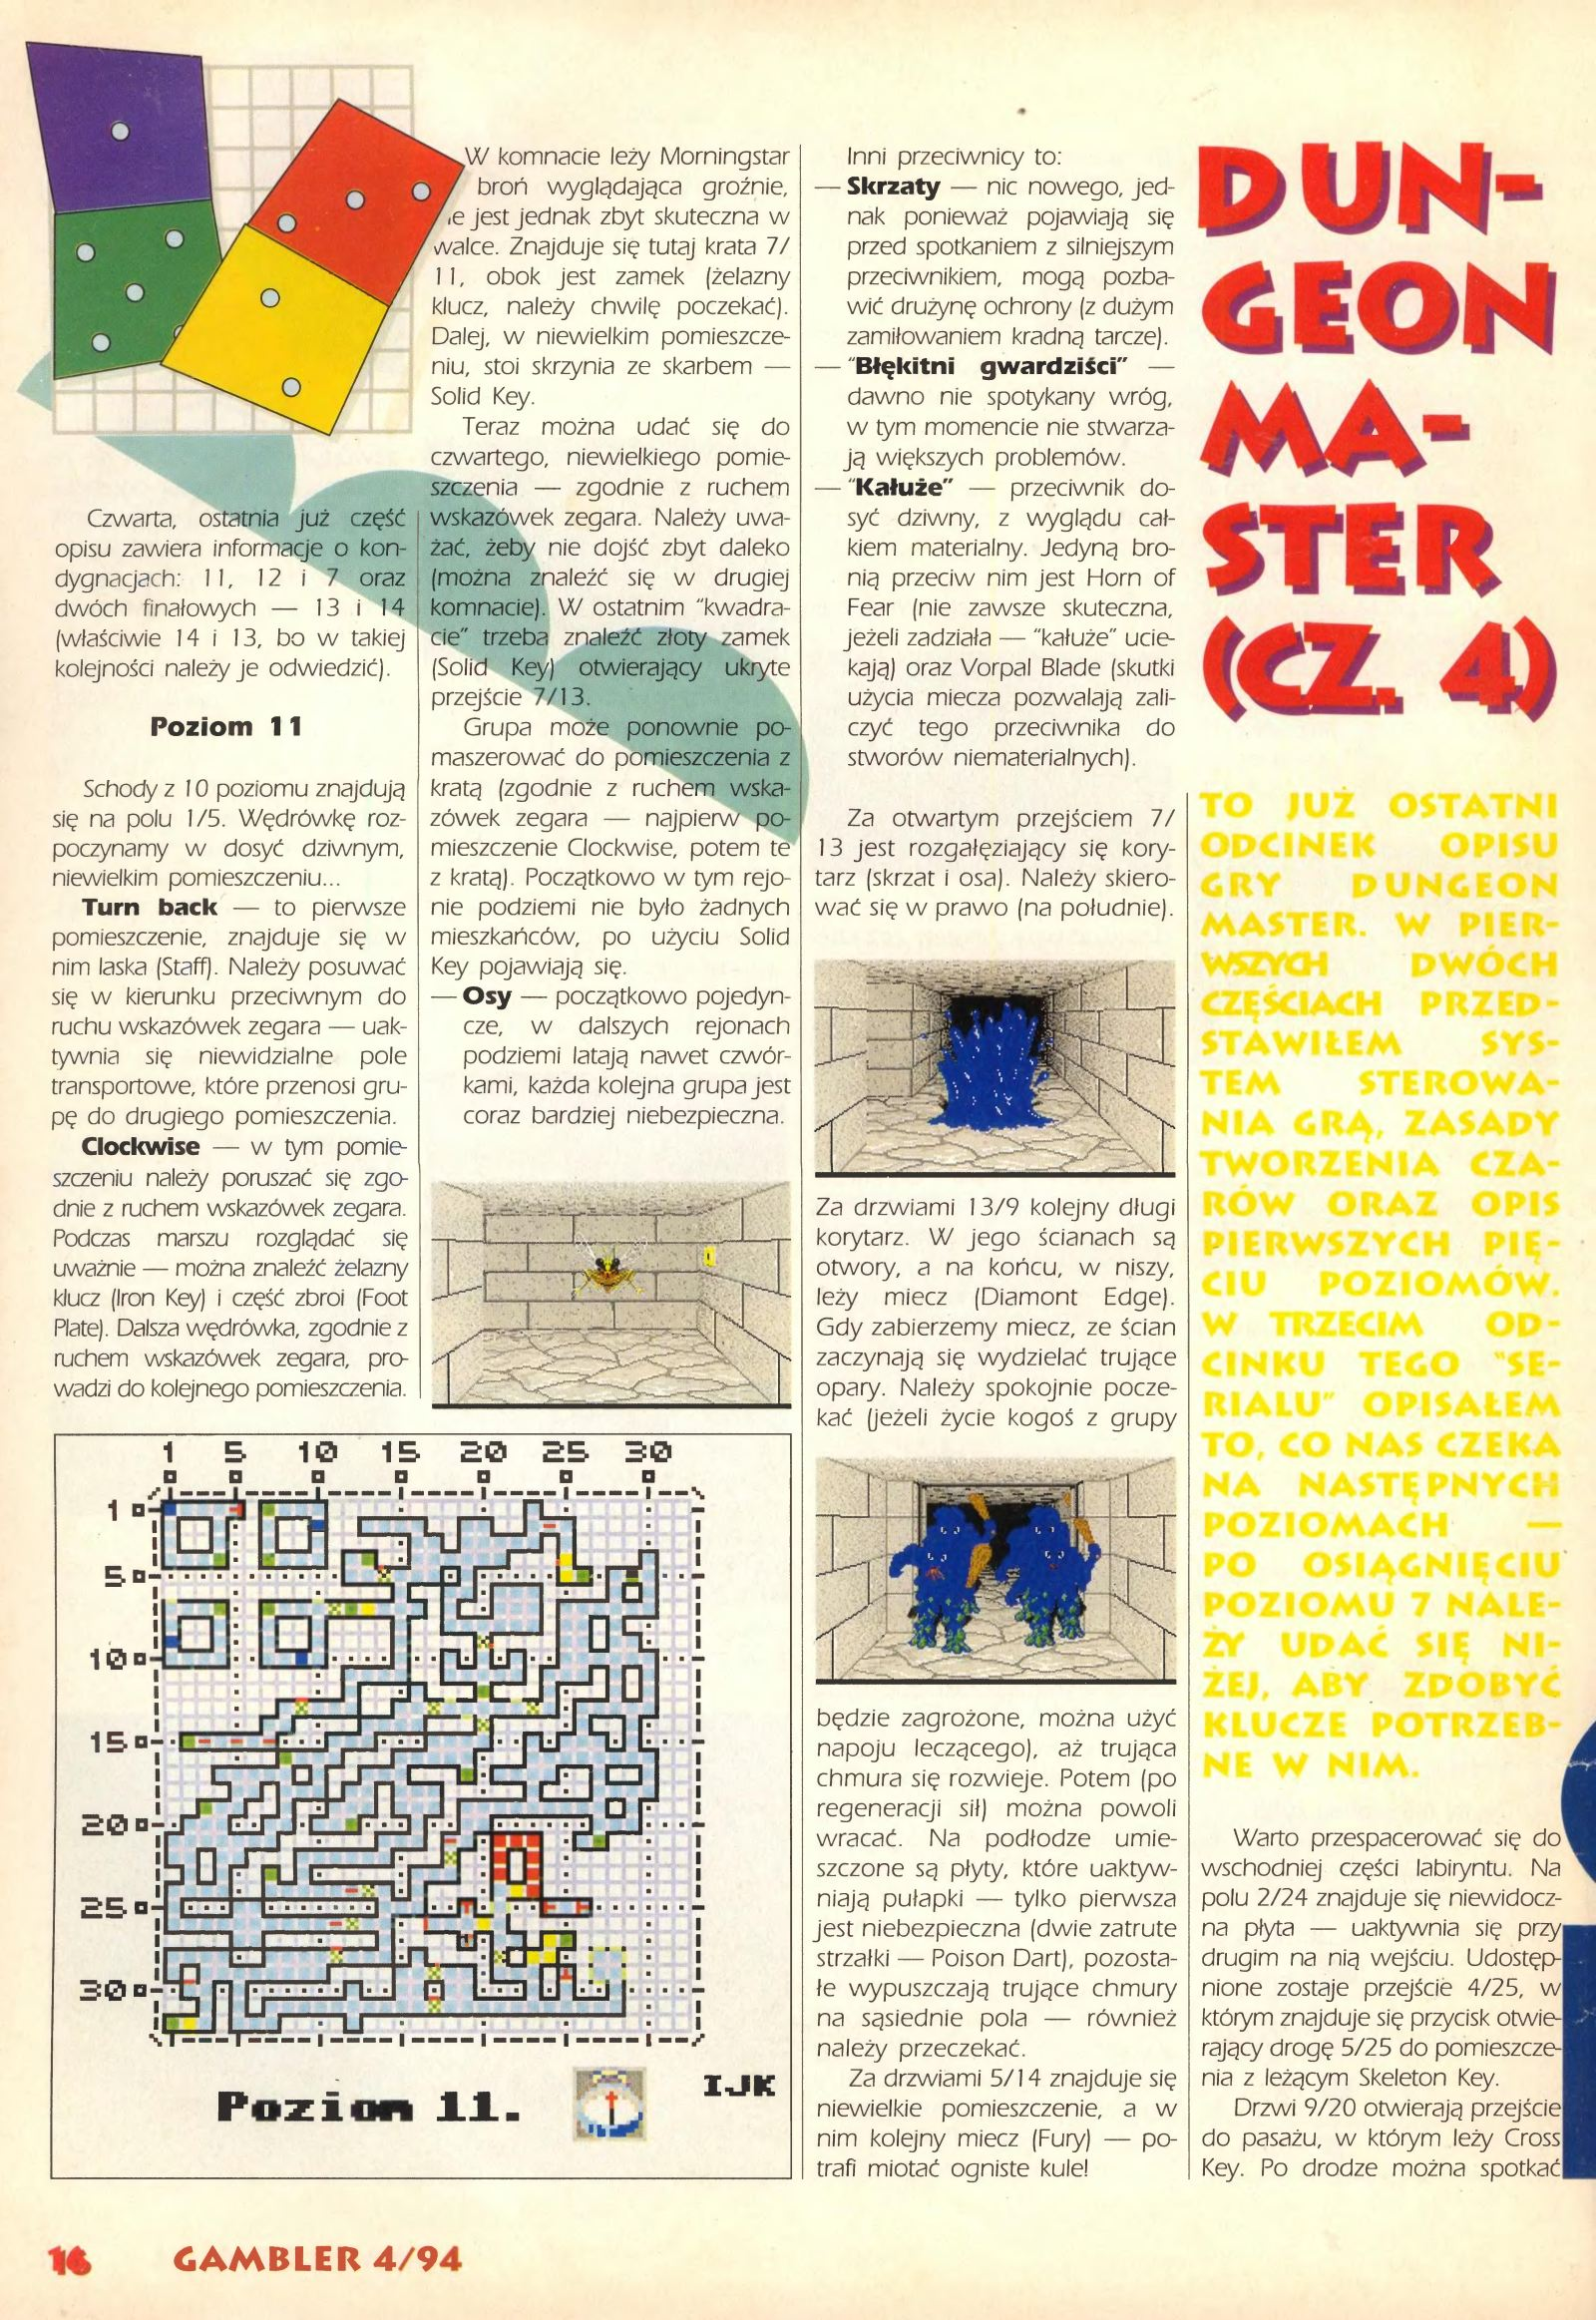 Dungeon Master Guide published in Polish magazine 'Gambler', April 1994, Page 16